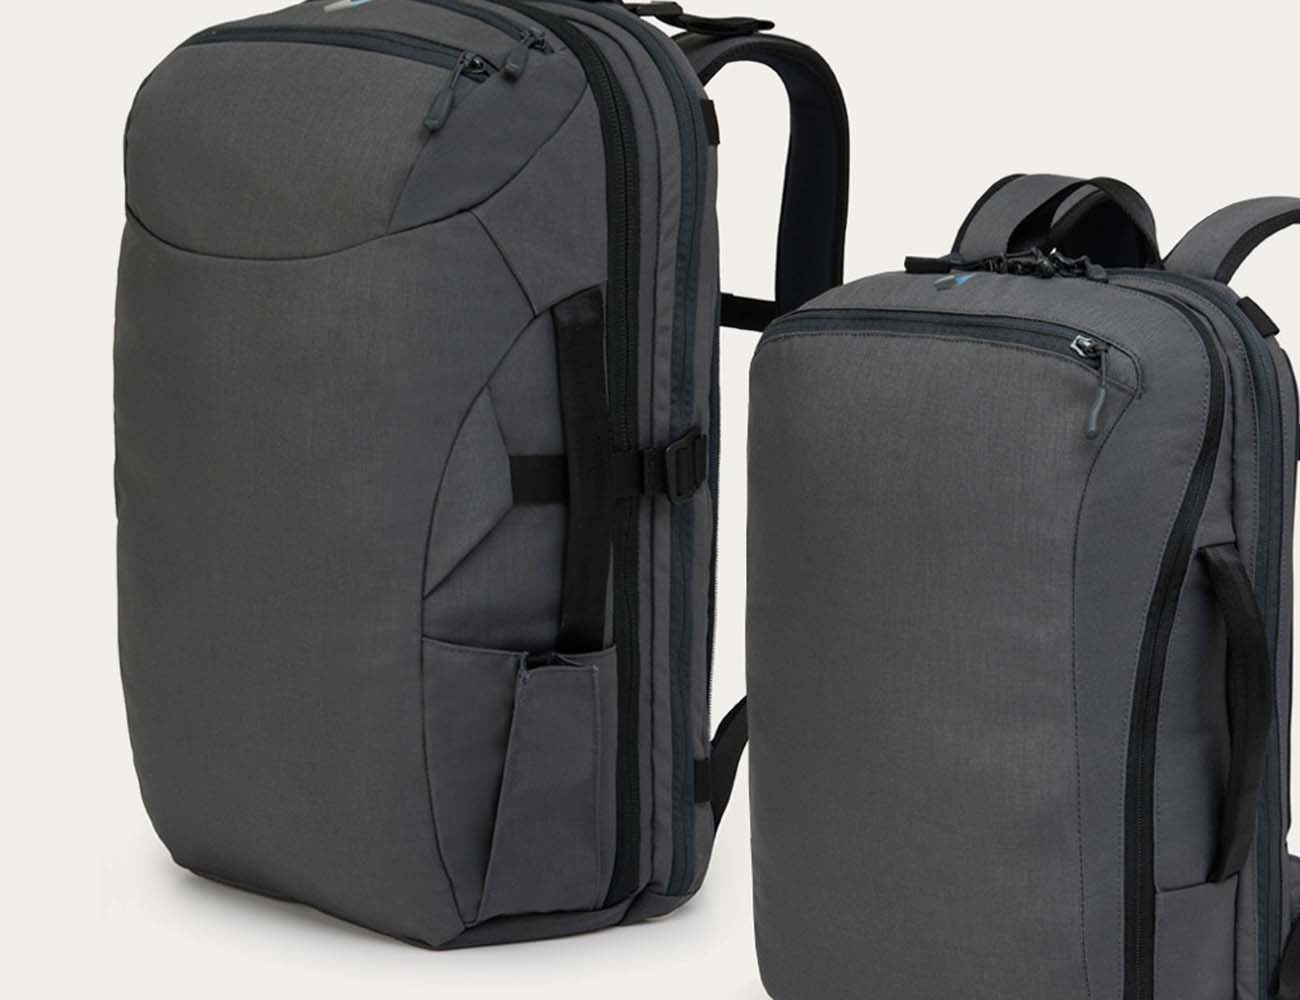 The+Minaal+Daily+And+Carry-on+2.0+%26%238211%3B+Your+Travel+Speed+Boost+Backpack